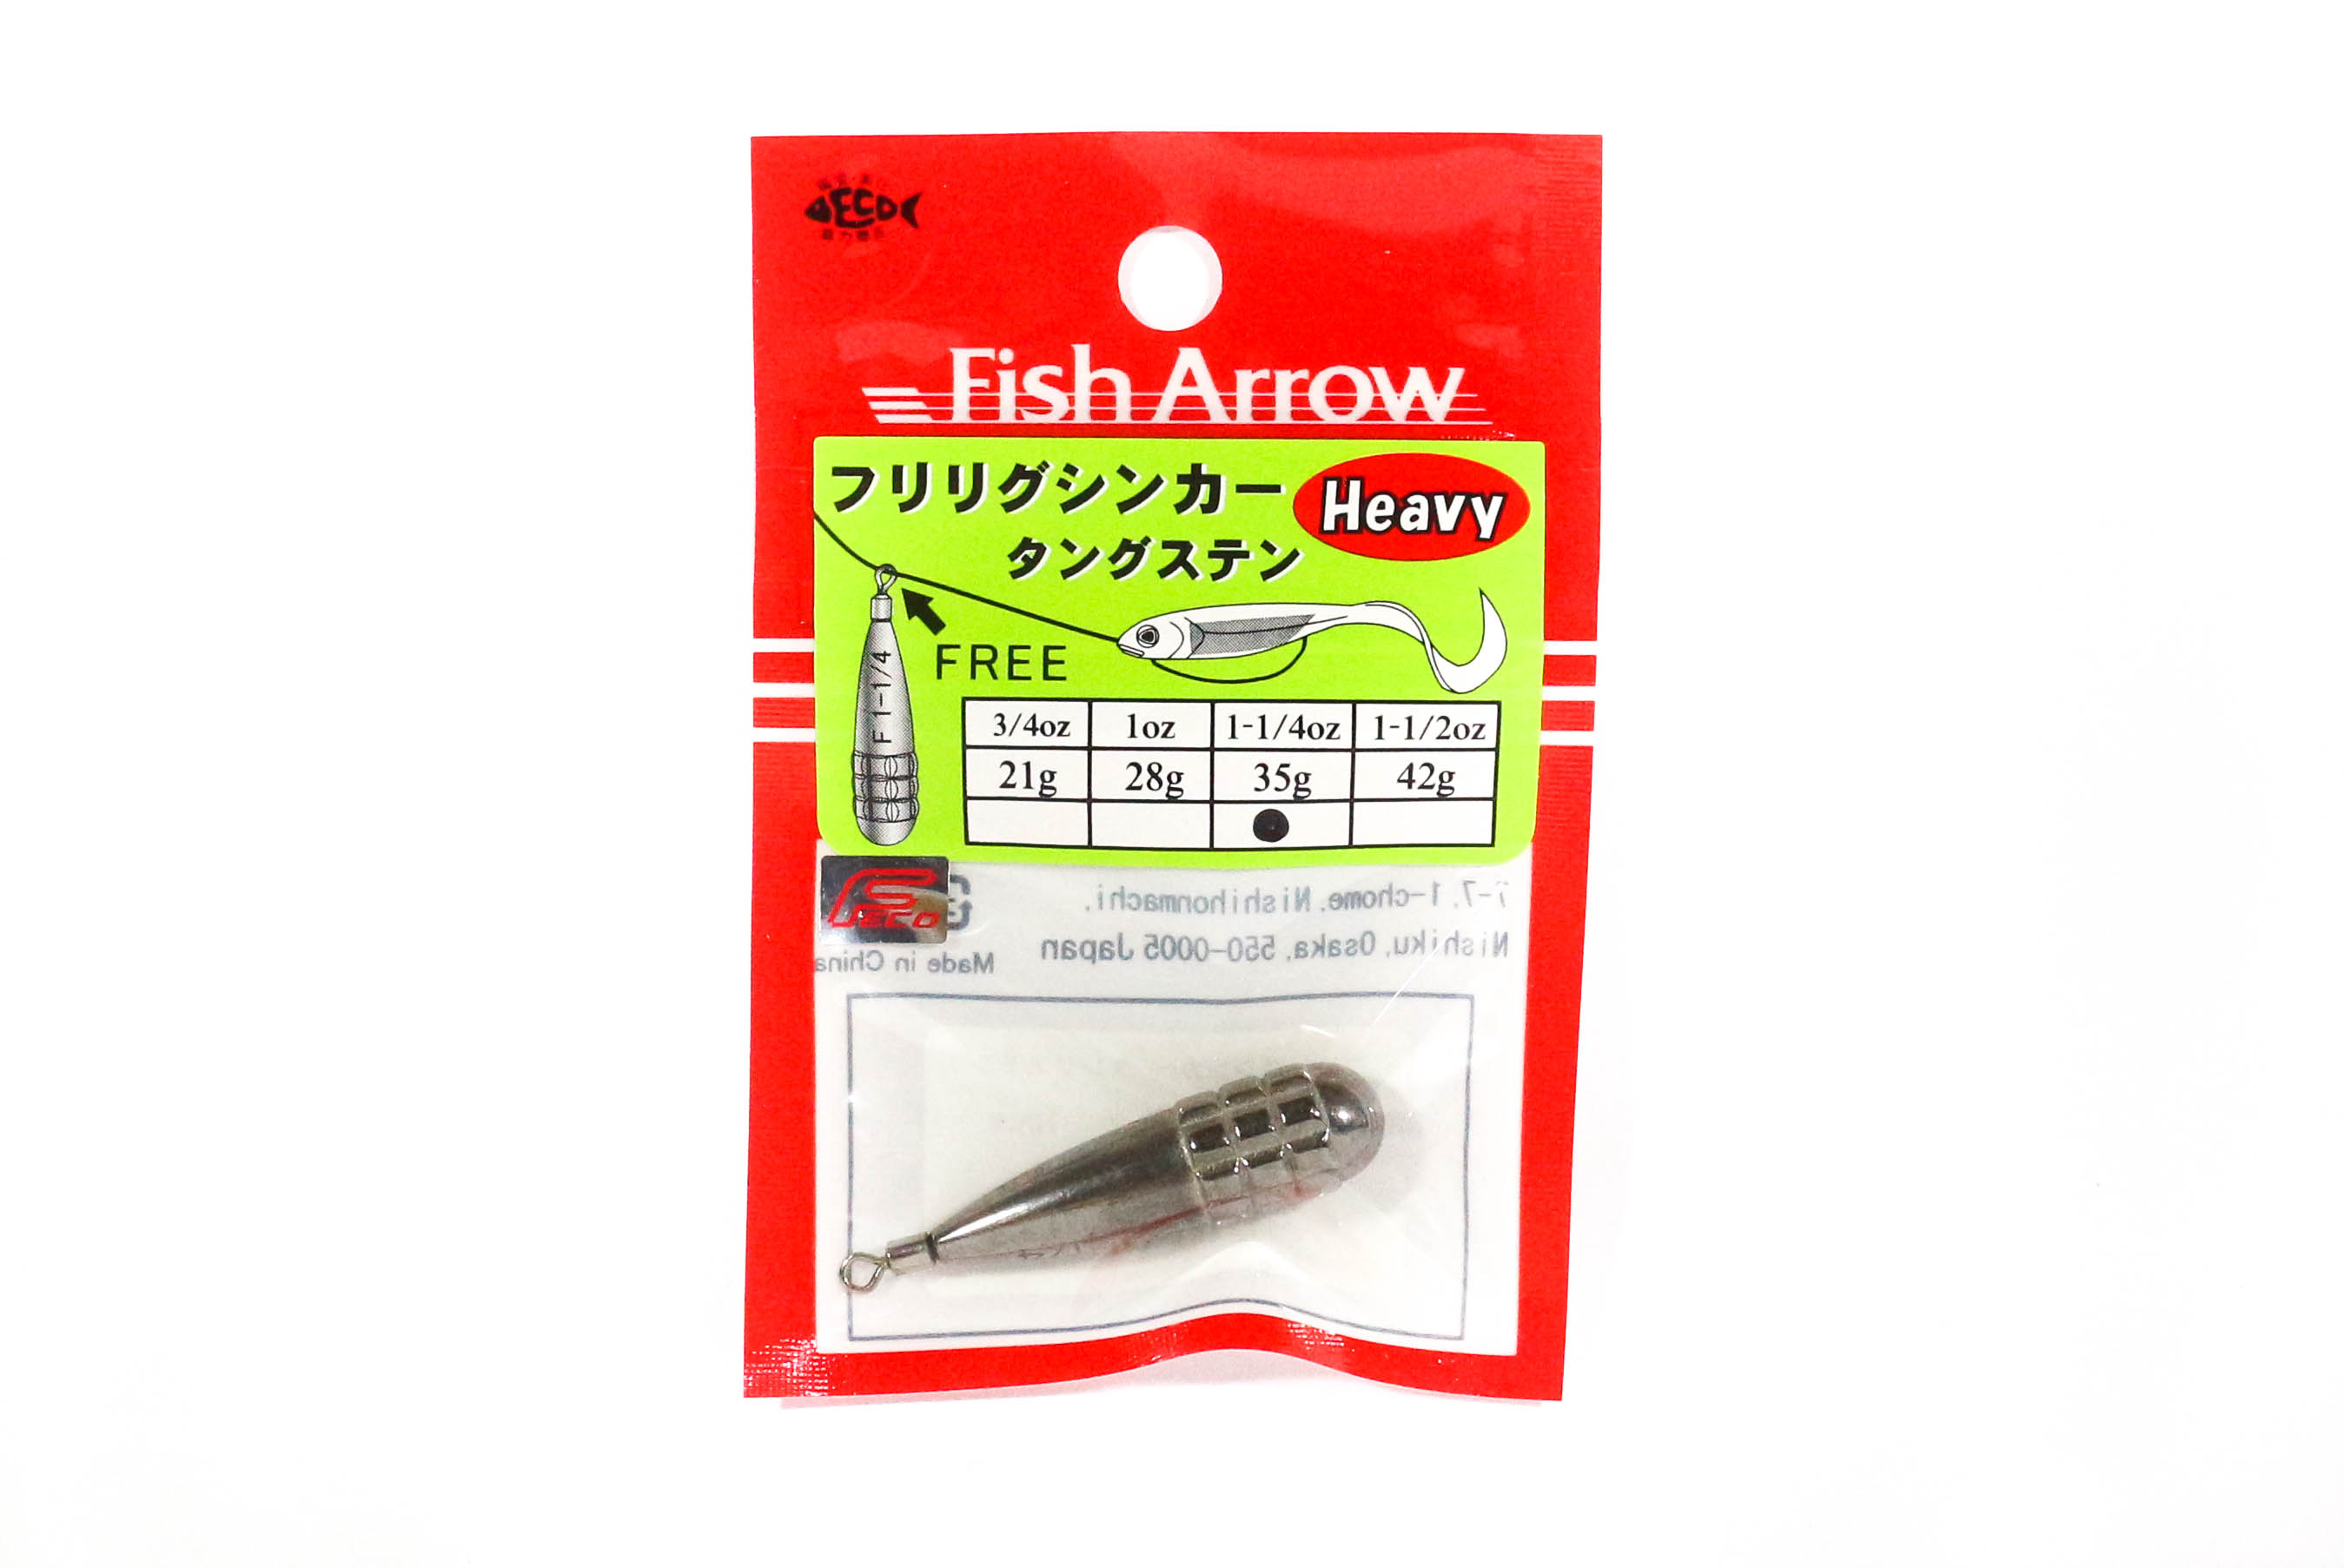 Fish Arrow Free Rig Tungster Sinker 1 1/4 oz 1 piece per pack (2718)